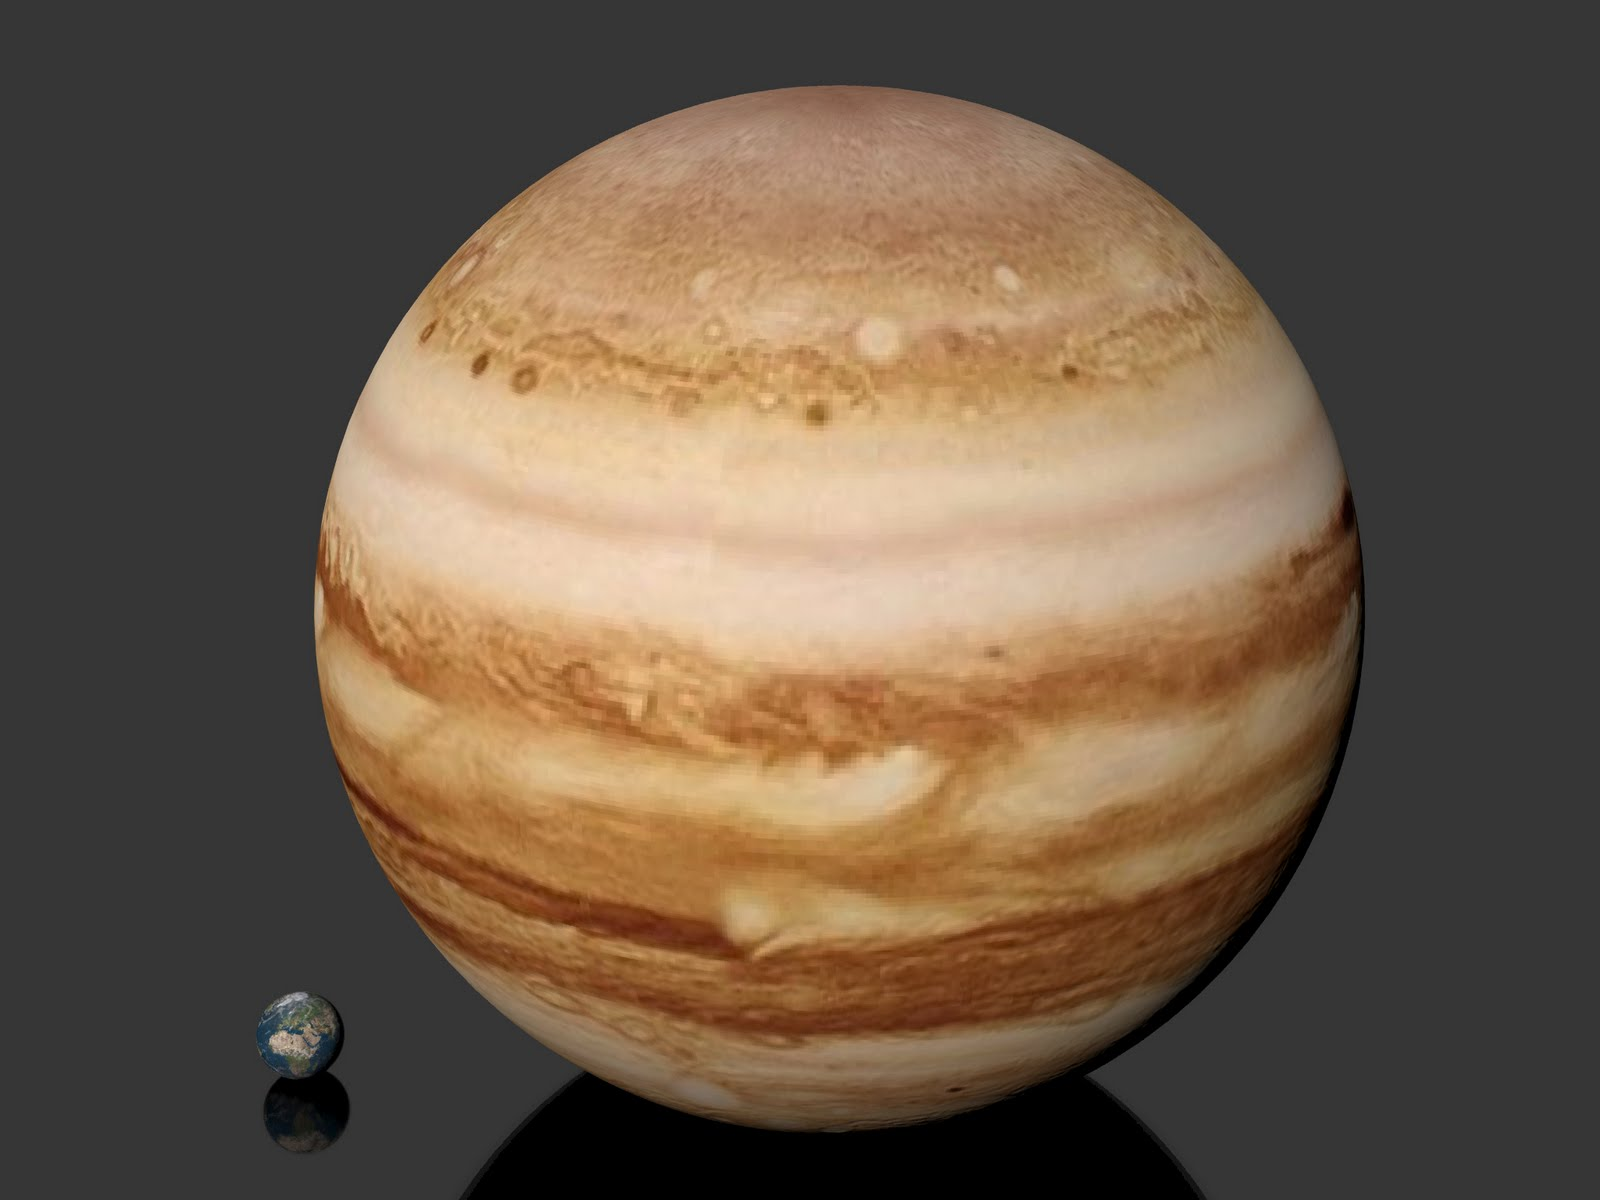 jupiter planet images - HD 1600×1200